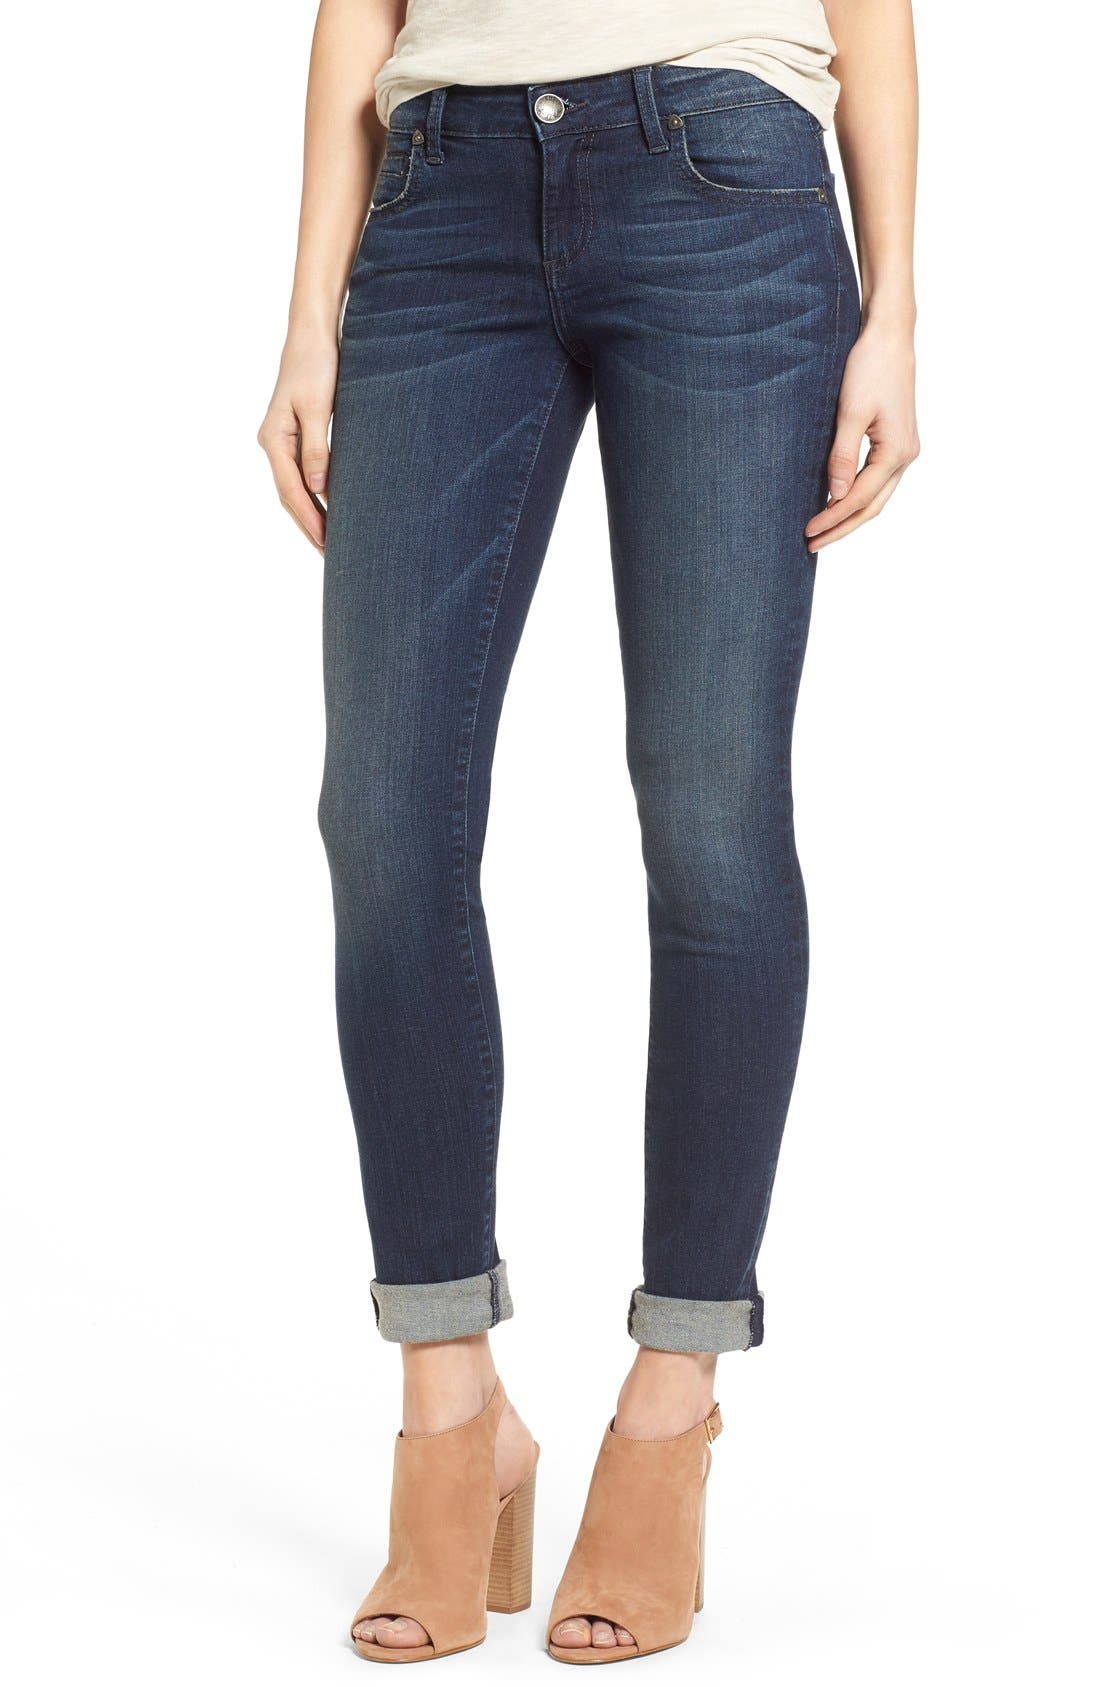 'Catherine' Slim Boyfriend Jeans,                             Main thumbnail 1, color,                             Carefulness